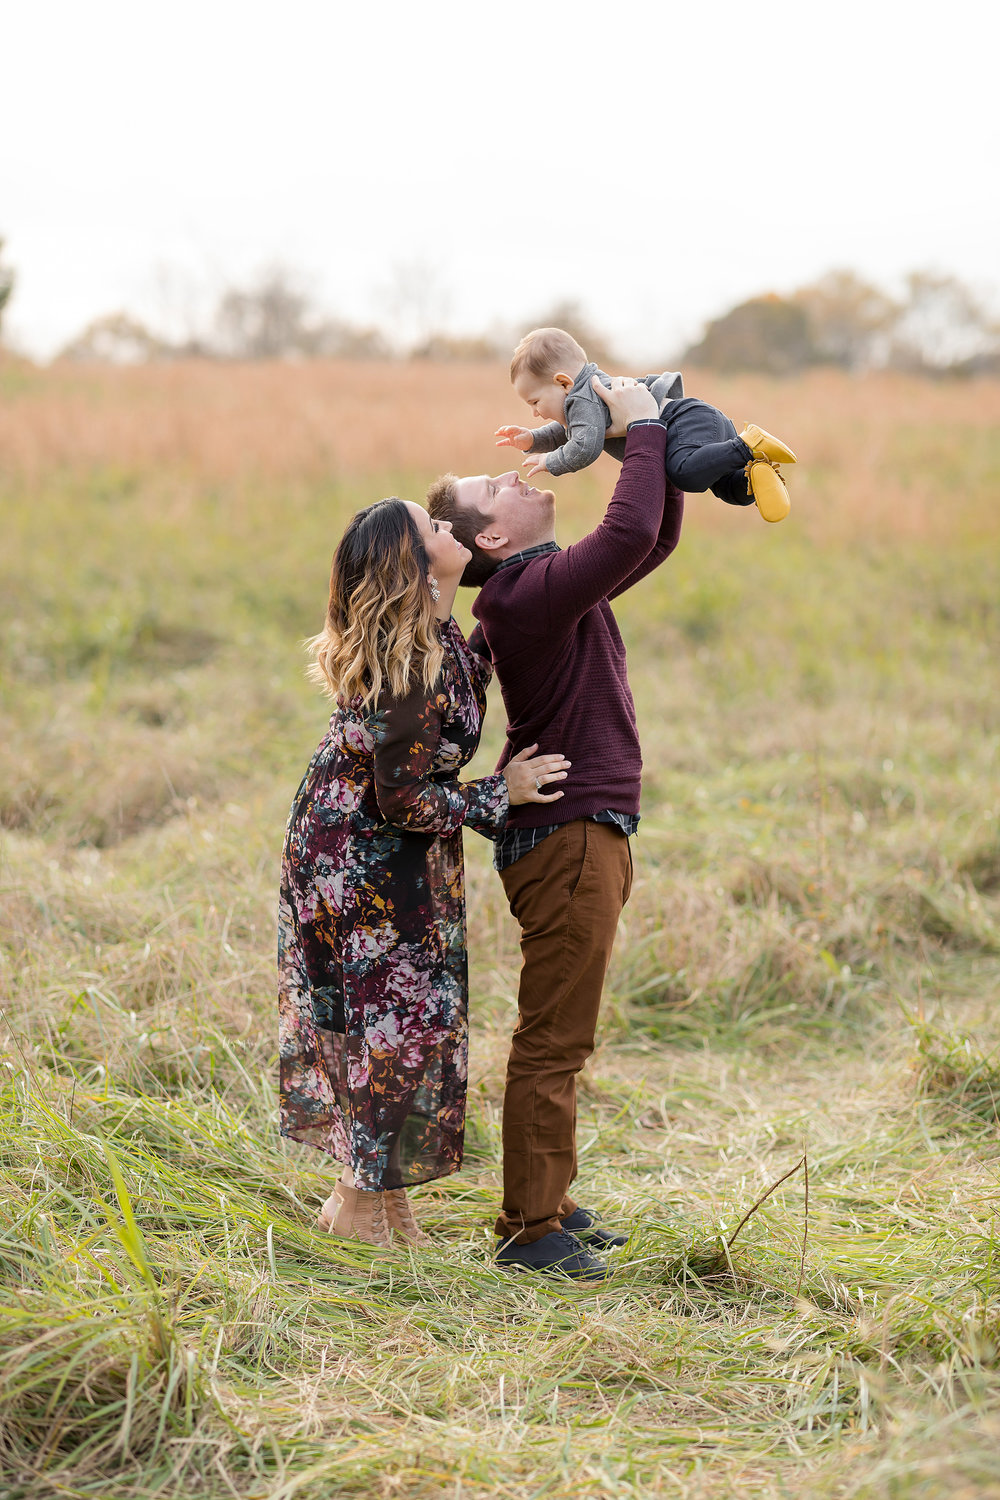 atlanta-midtown-west-end-decatur-lily-sophia-photography-family-photographer-eight-month-baby-boy-sunset-outdoor-field-family-photos_0339.jpg